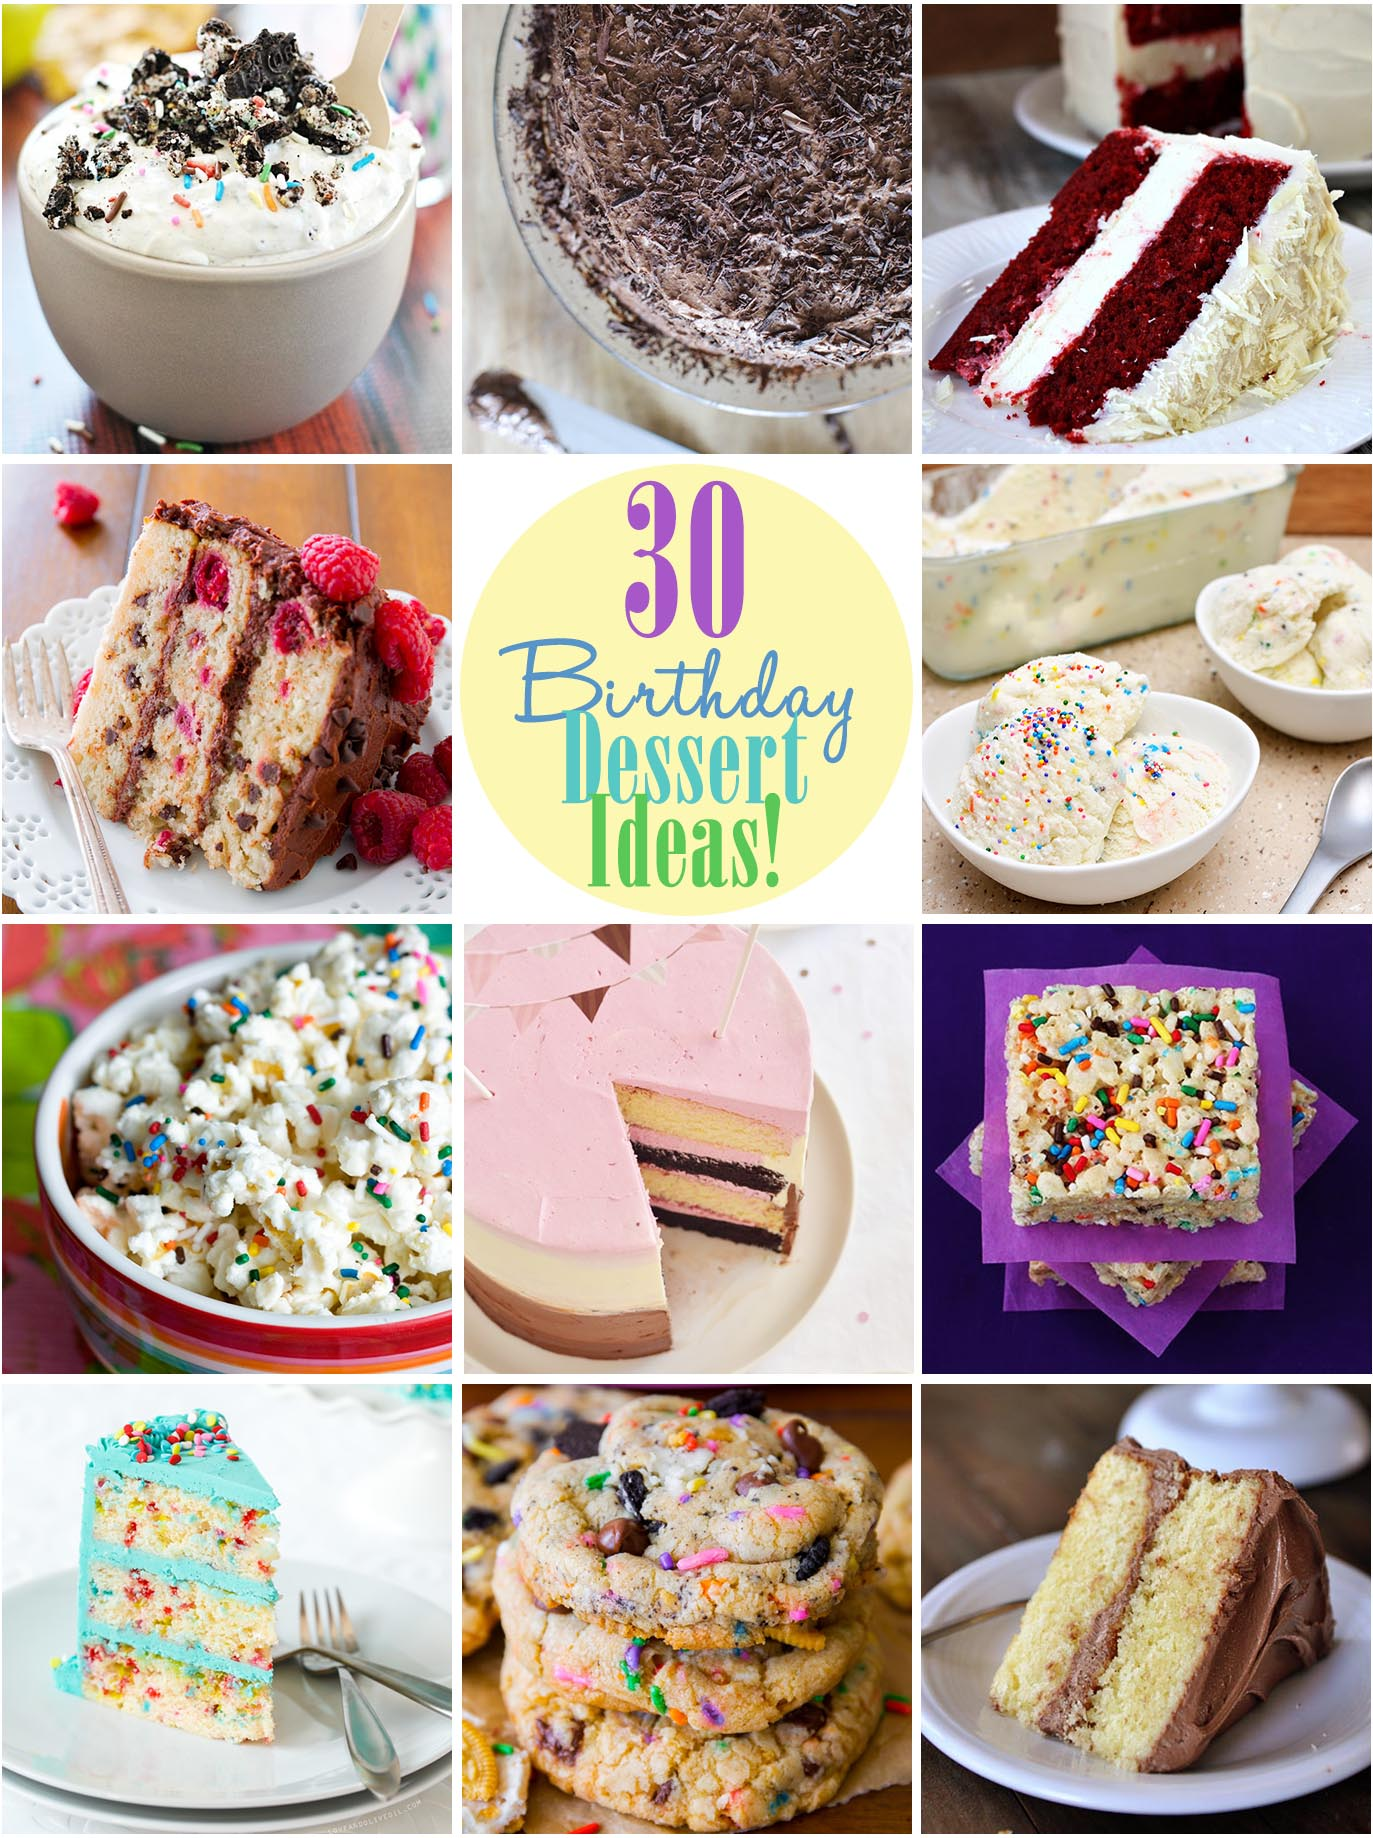 30 Birthday Dessert Ideas